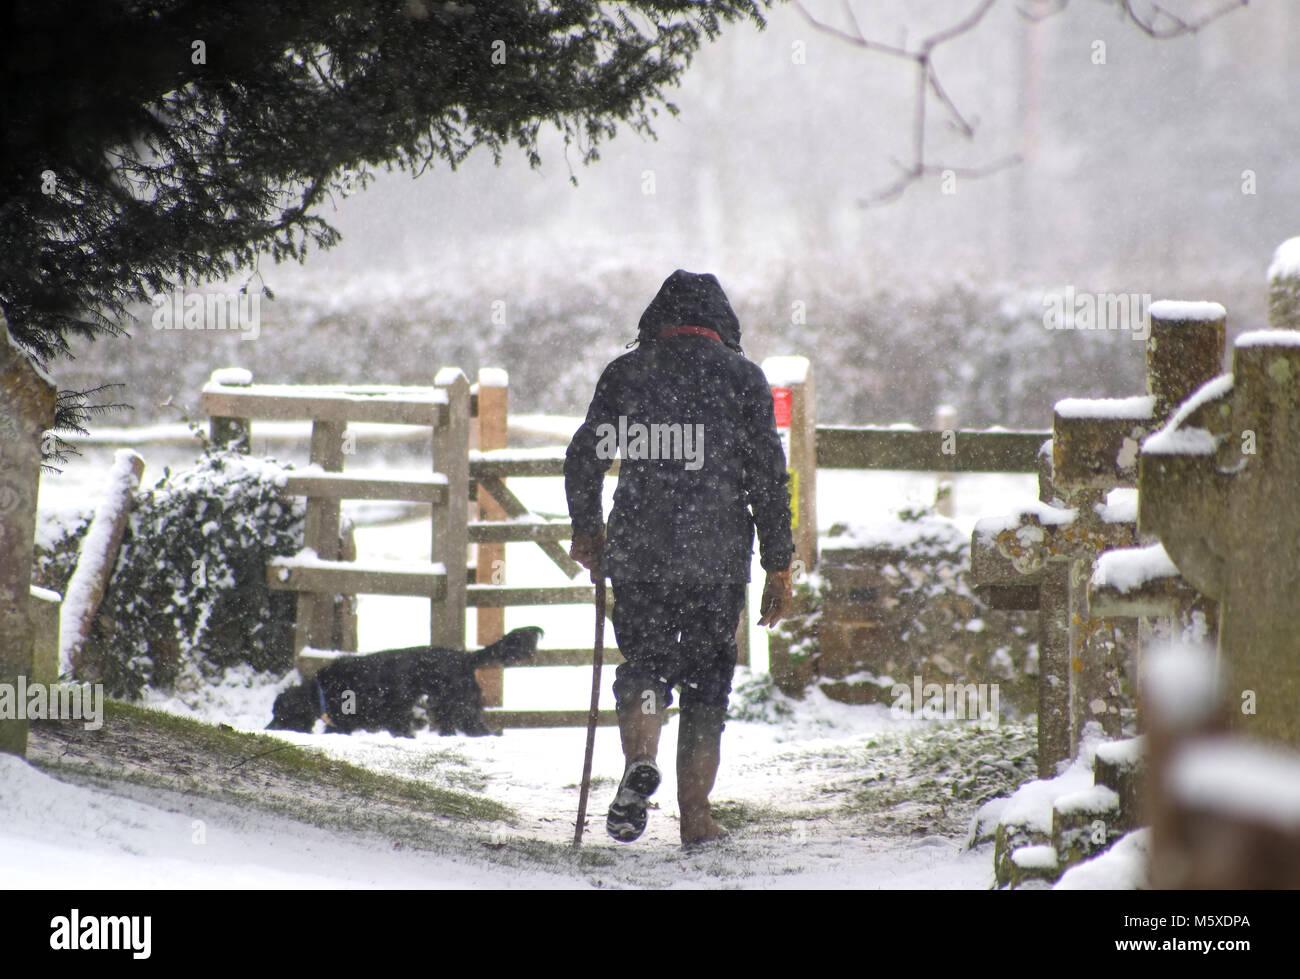 Ripe, East Sussex. 27th February 2018. Snowy conditions in Ripe, East Sussex, as the 'Beast from the East' - Stock Image